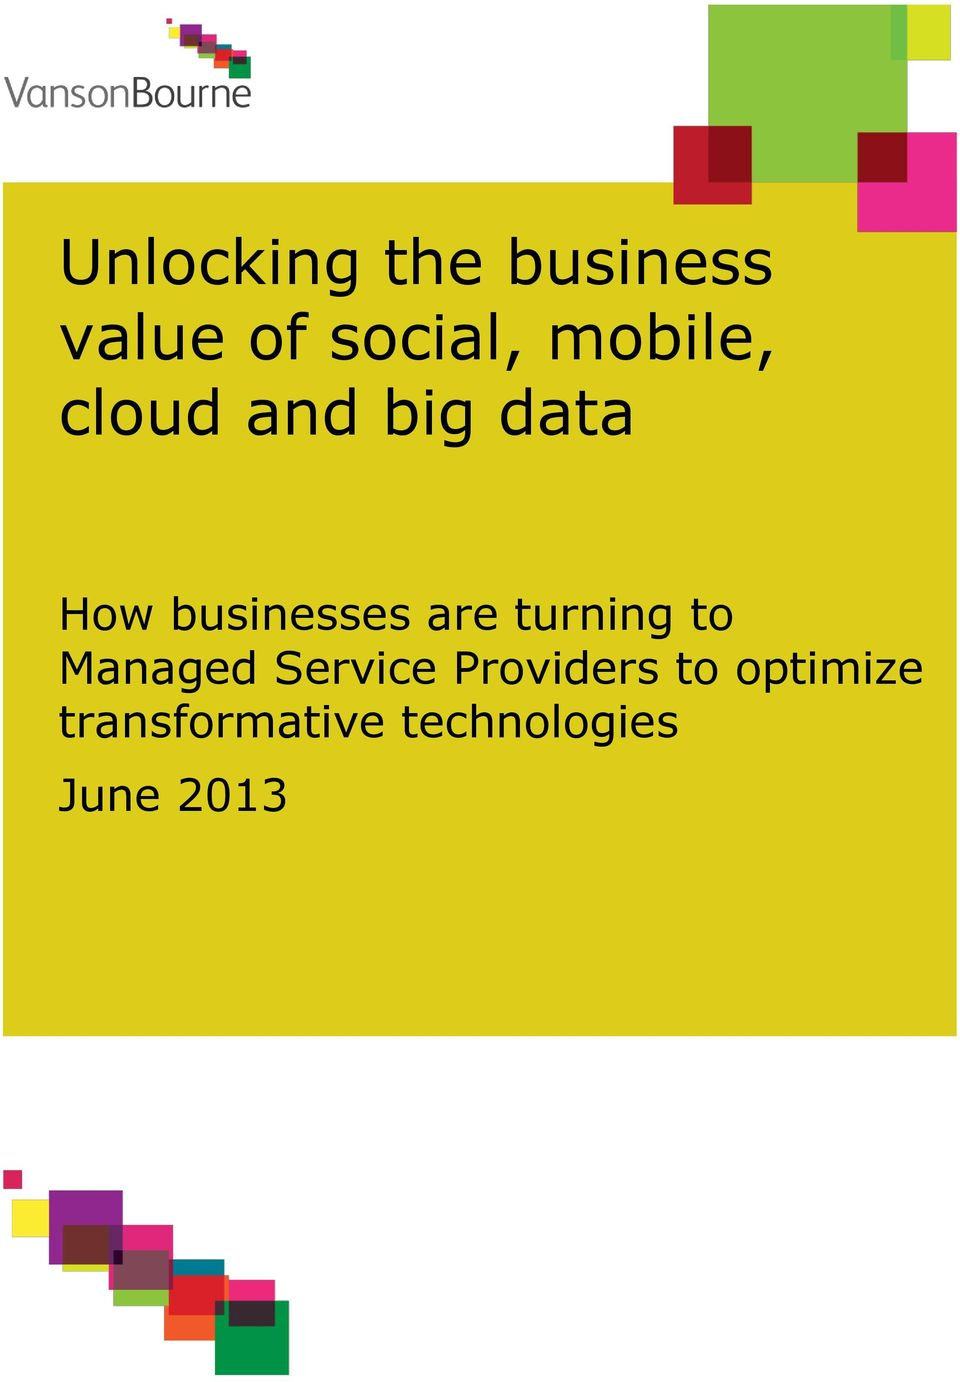 are turning to Managed Service Providers